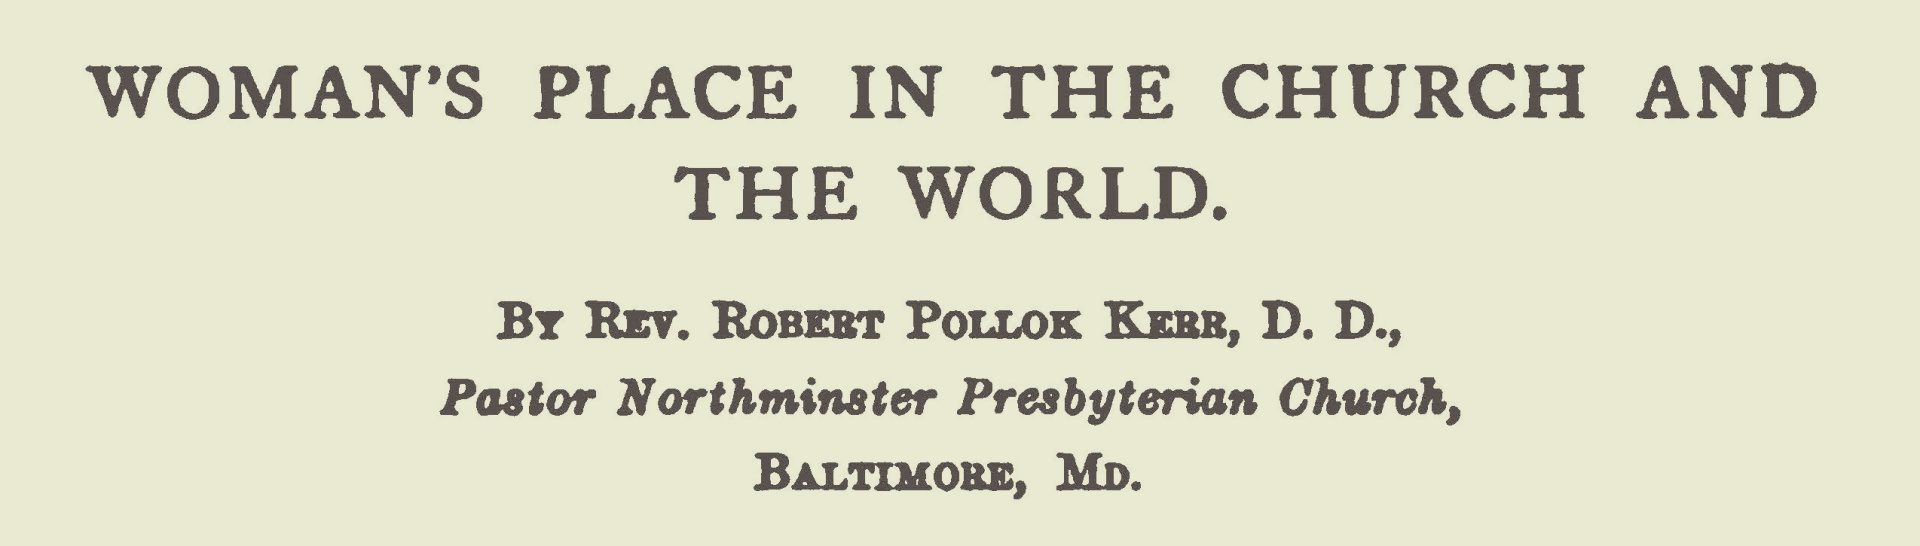 Kerr, Robert Pollock, Woman's Place in the Church and the World Title Page.jpg